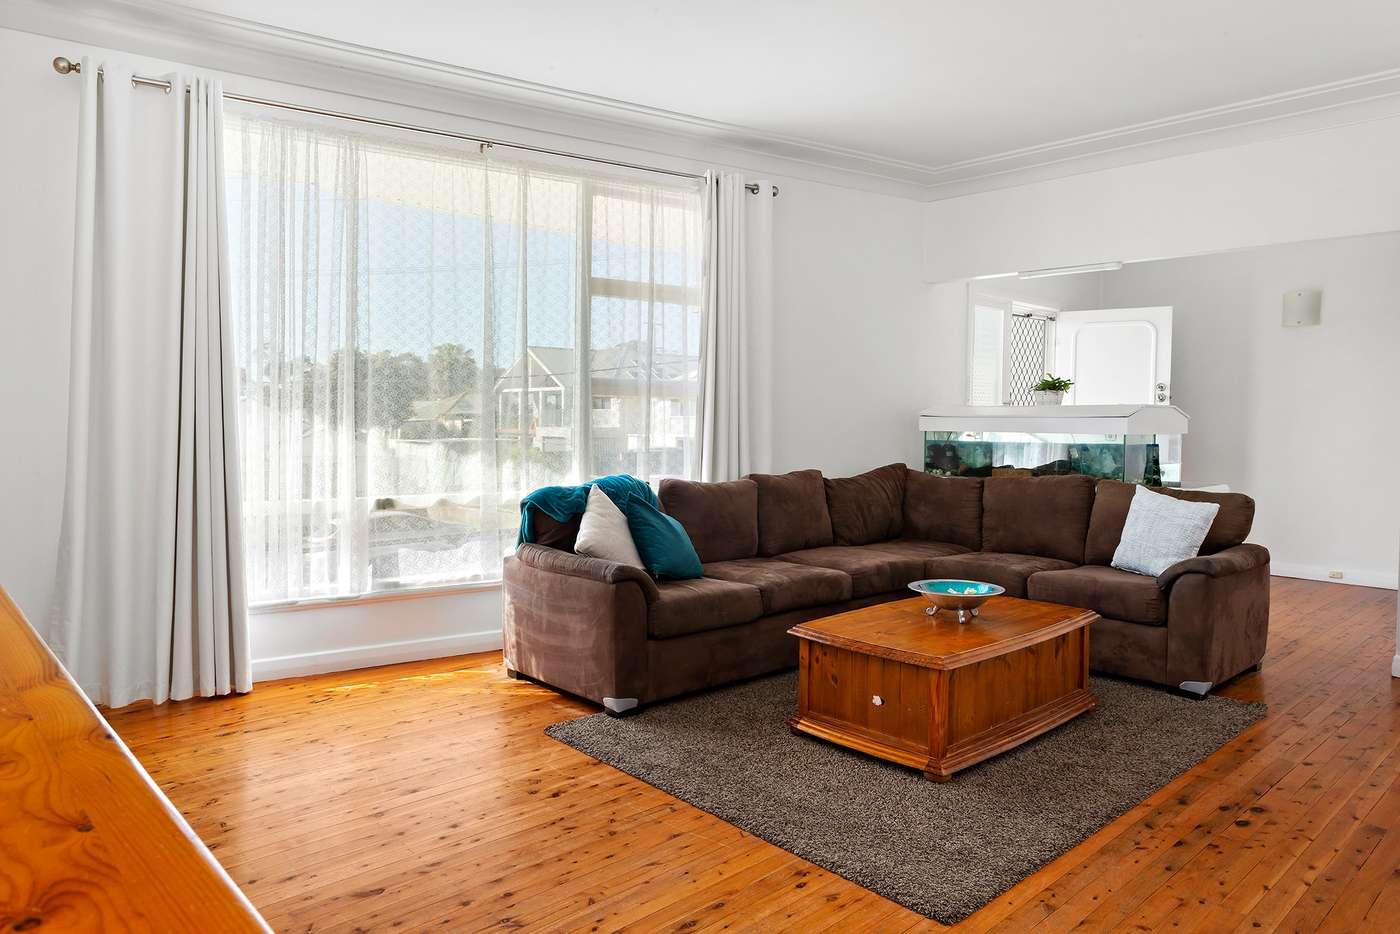 Sixth view of Homely house listing, 1 Bluebell Street, Belmont NSW 2280